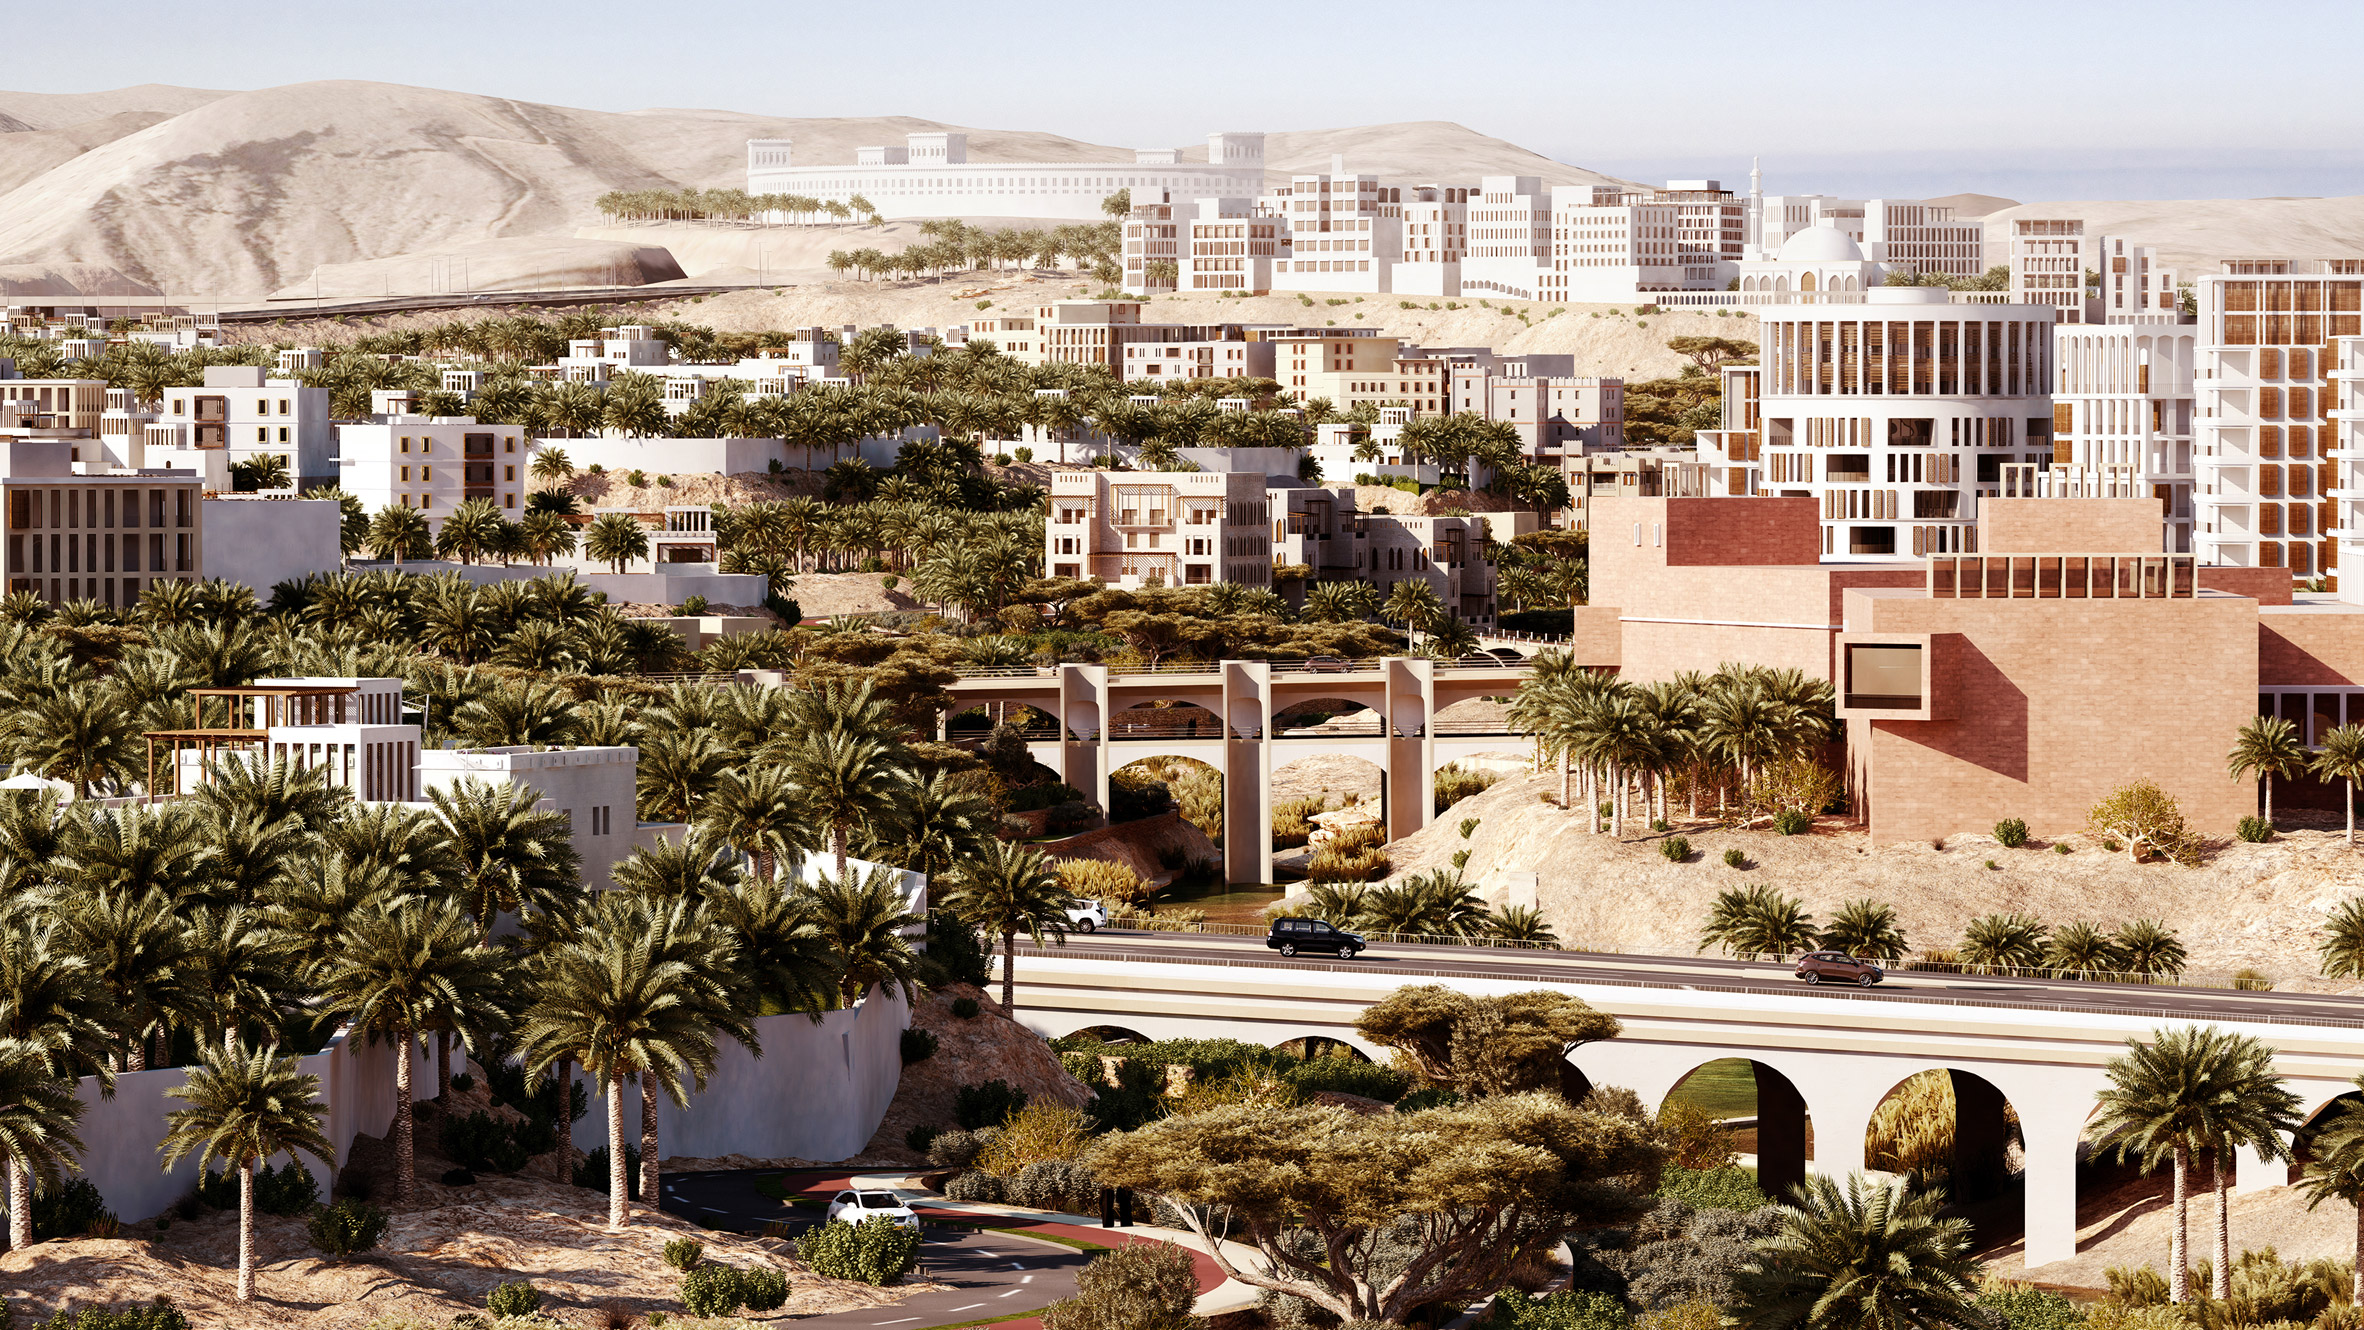 """Allies and Morrison challenges """"identikit urbanism"""" with masterplan for new city in Oman"""